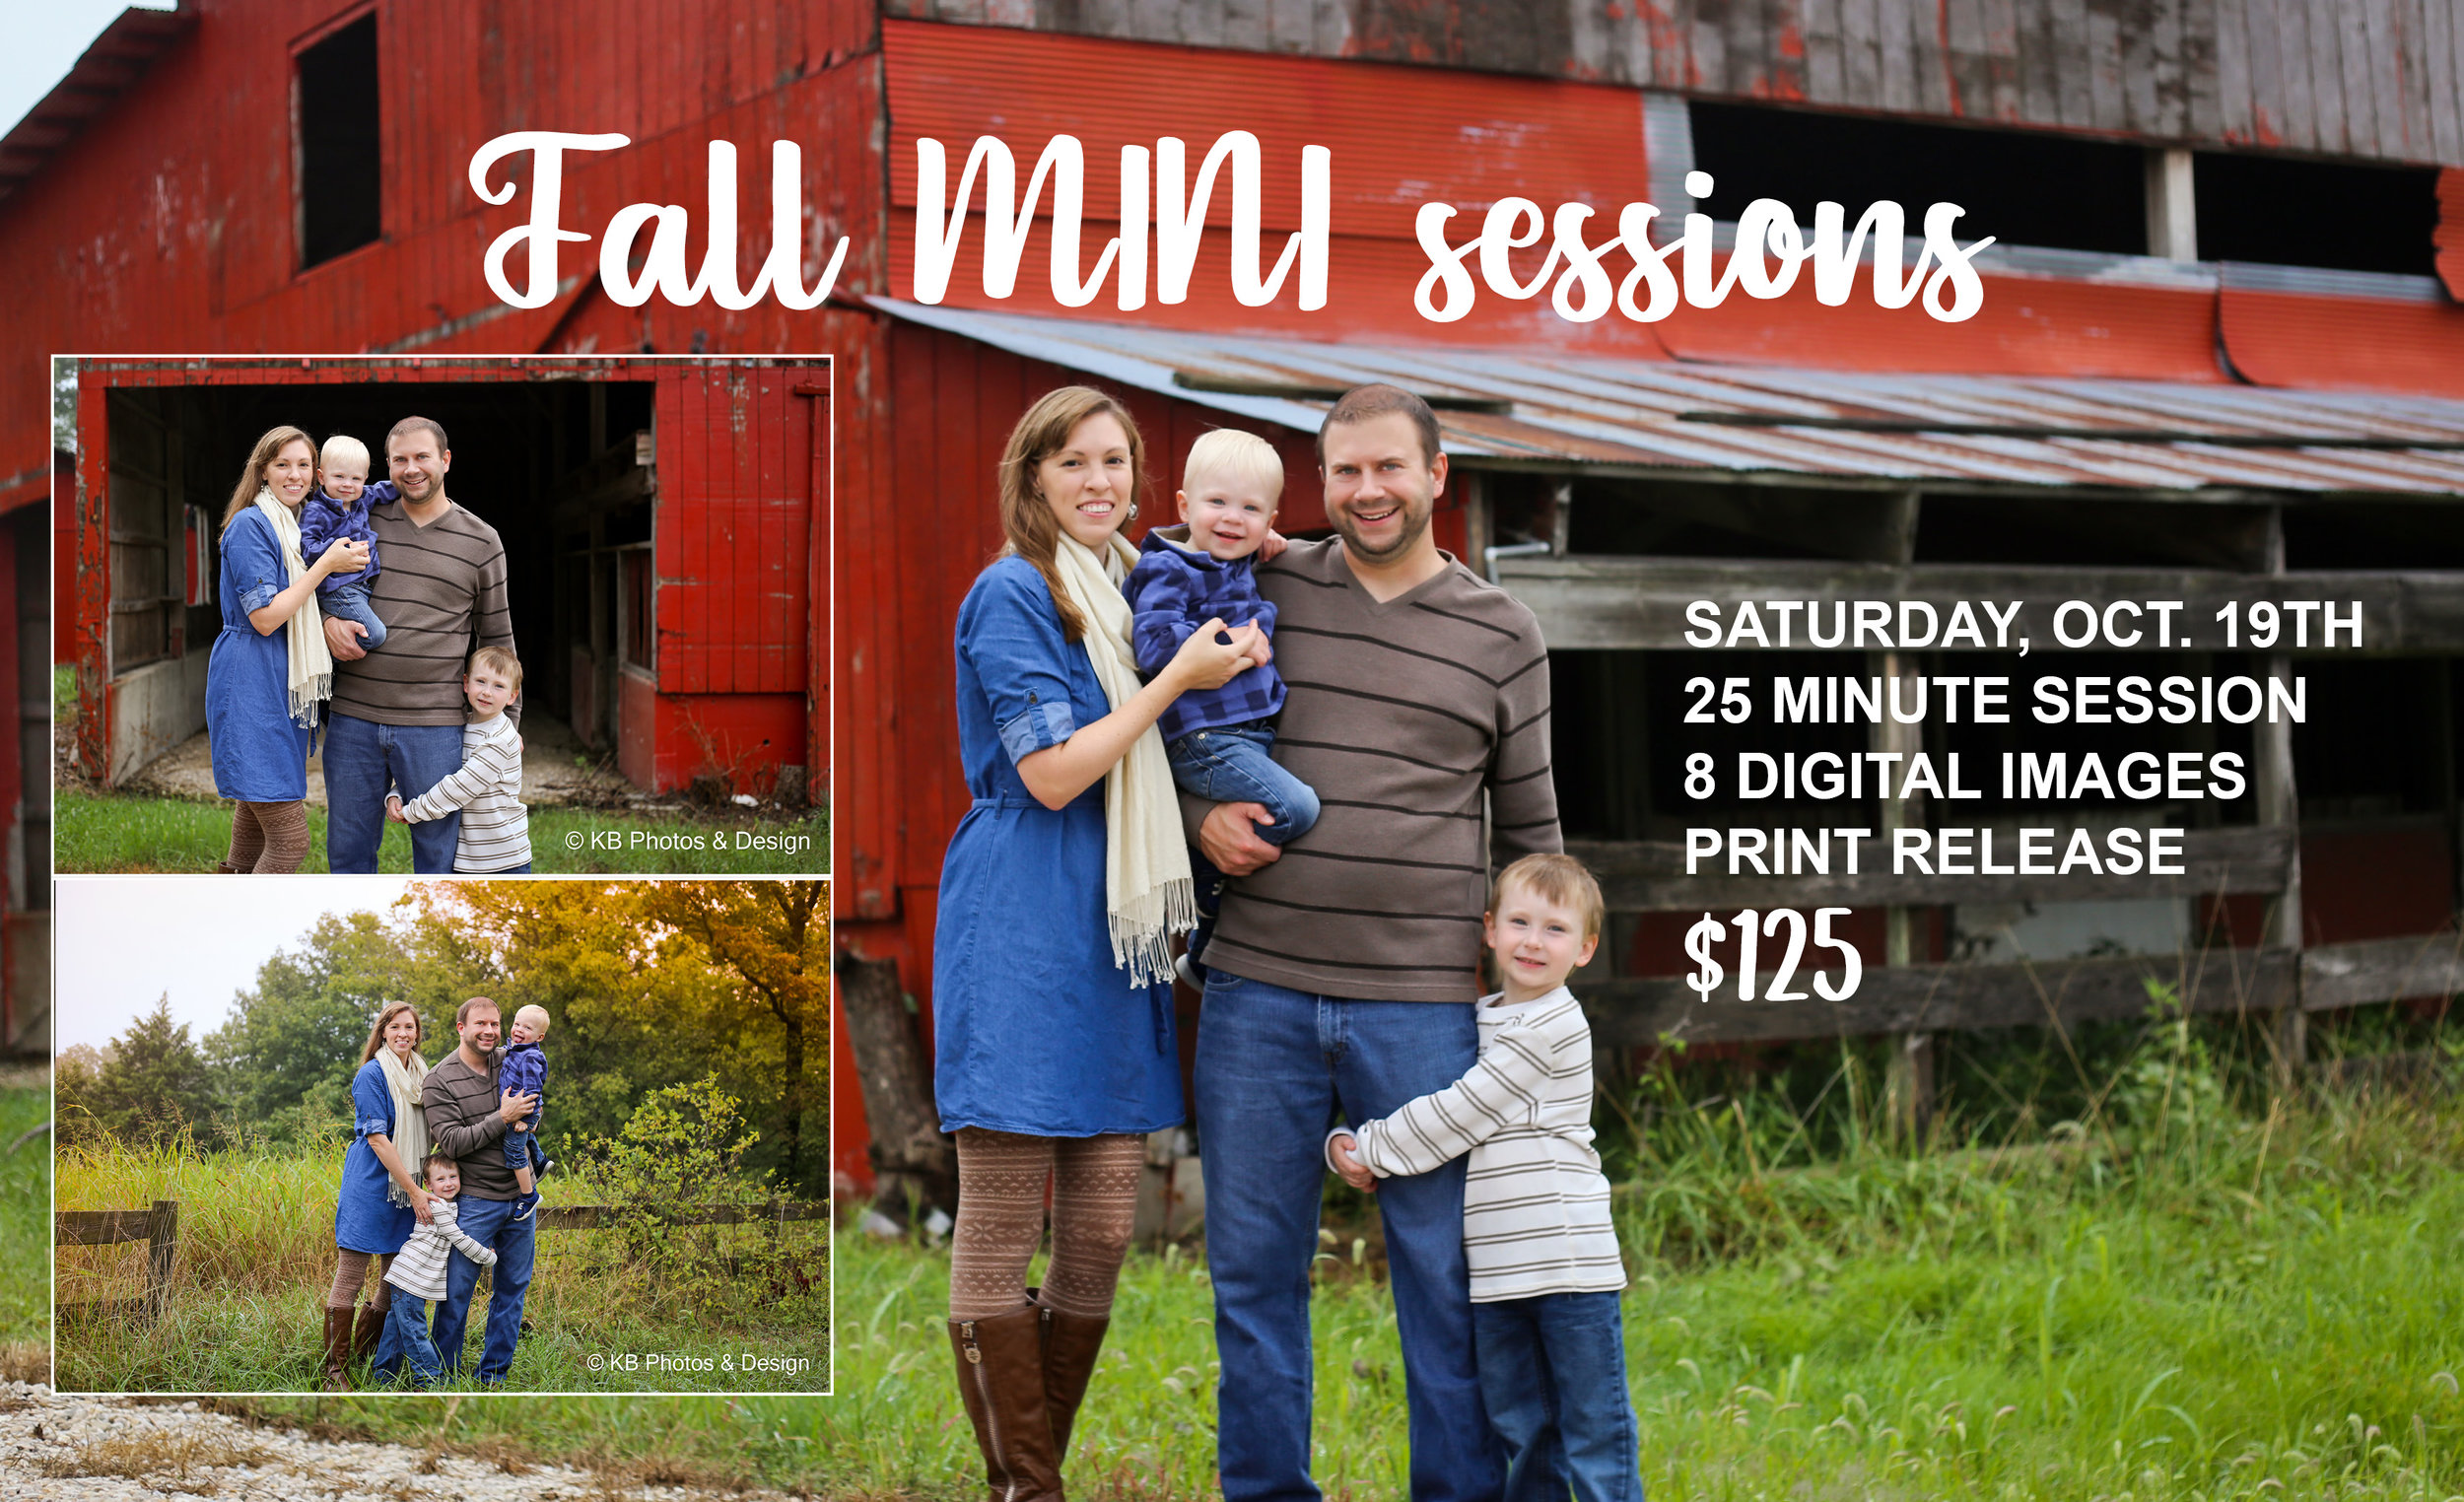 Cooler weather. Pumpkin spice everywhere. You know what that means…FALL! And with fall comes a perfect time to update your family photos!  Fall MINI photo sessions are Saturday, October 19th at a gorgeous red barn location in Lake Ozark, MO. I love this location for its versatility - rustic barn, fall leaves on trees, pretty grasses and wooden fence. This spot would also make for a great backdrop for some Christmas card photos.   Sessions are 25 minutes in length - $125 - and come with 8 digital edited images and a print release. I have limited spots available in the morning and afternoon, so be sure to  book your spot today!